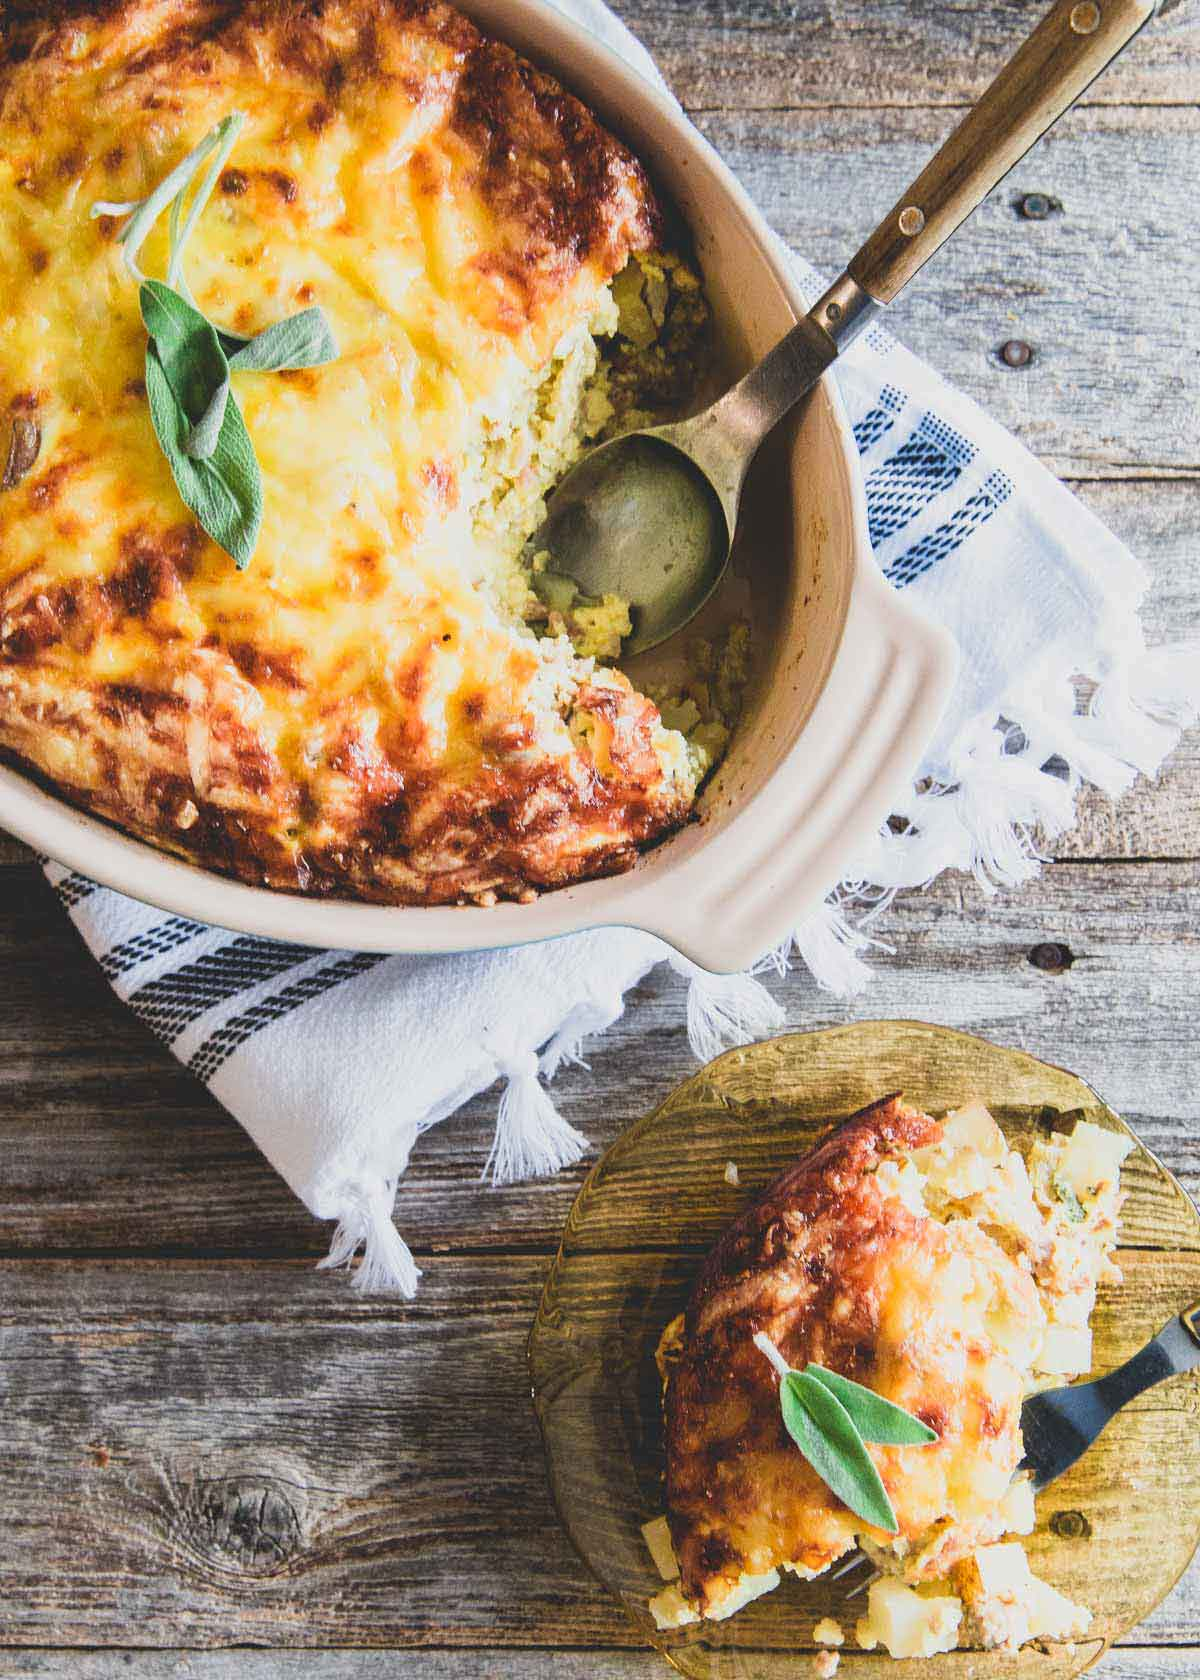 Whether it's a weekend breakfast or a special holiday brunch, this cheesy breakfast potato casserole is a delicious and hearty recipe to try!